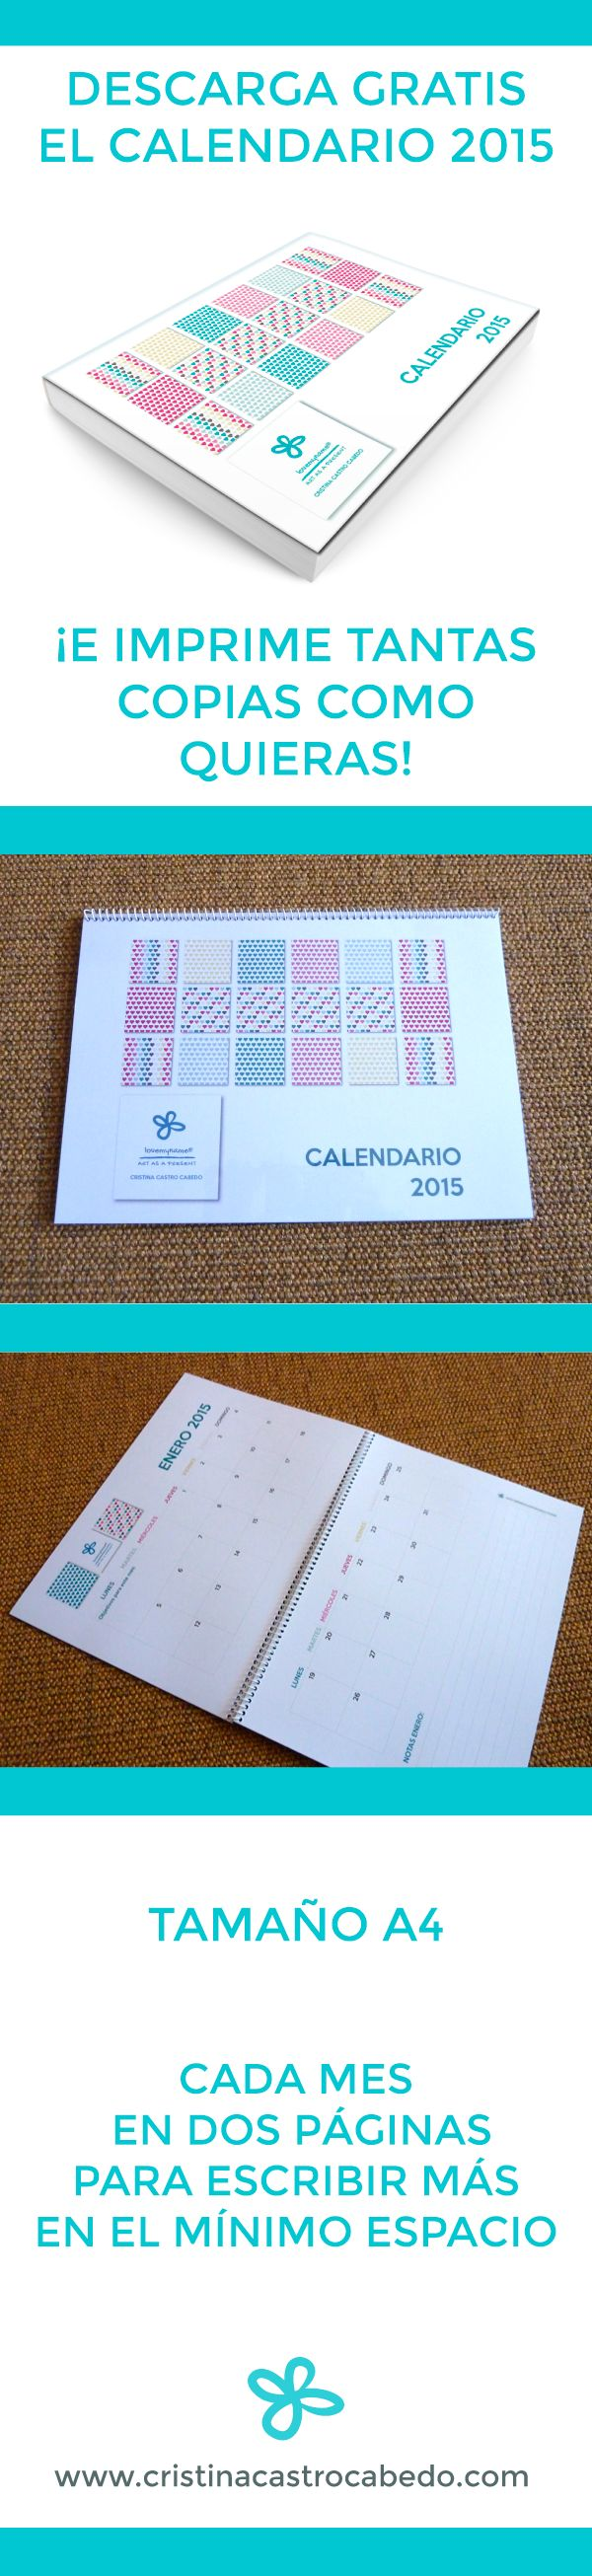 Descarga gratis tu calendario 2015. Ideal para imprimir y regalar.